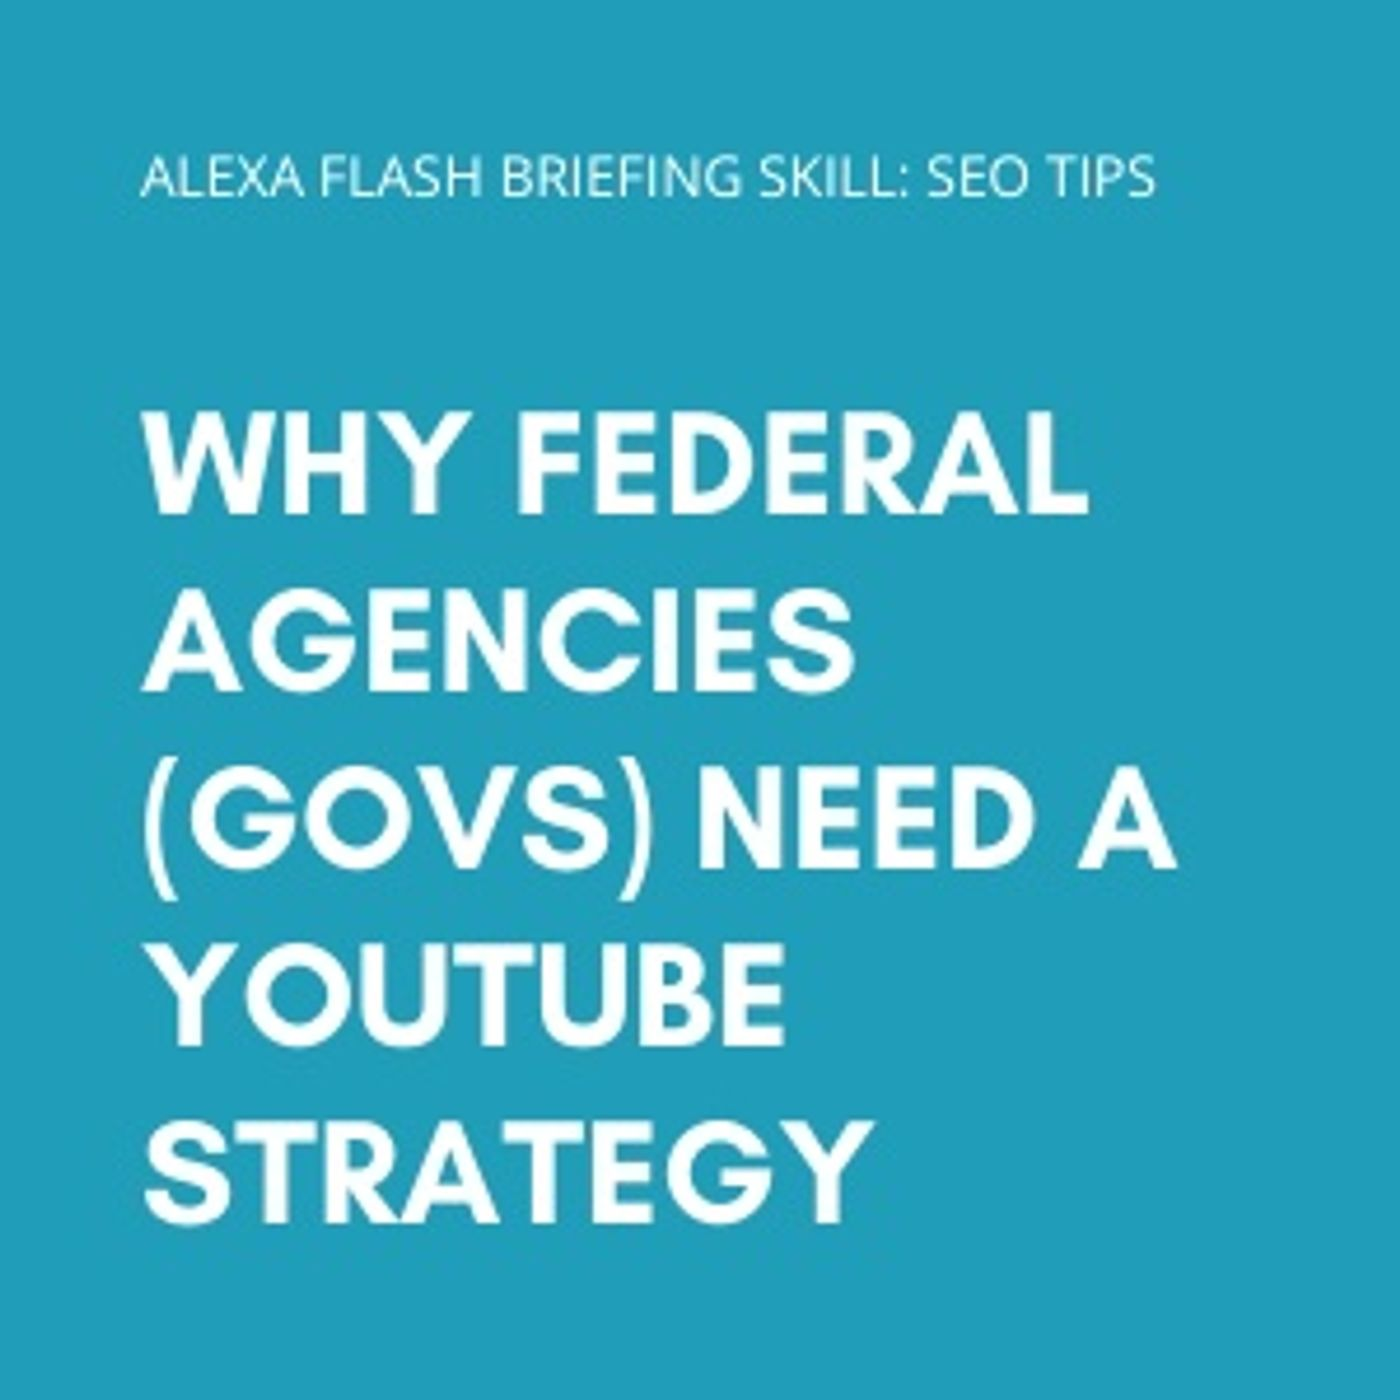 Why federal agencies (GOVs) need a YouTube strategy